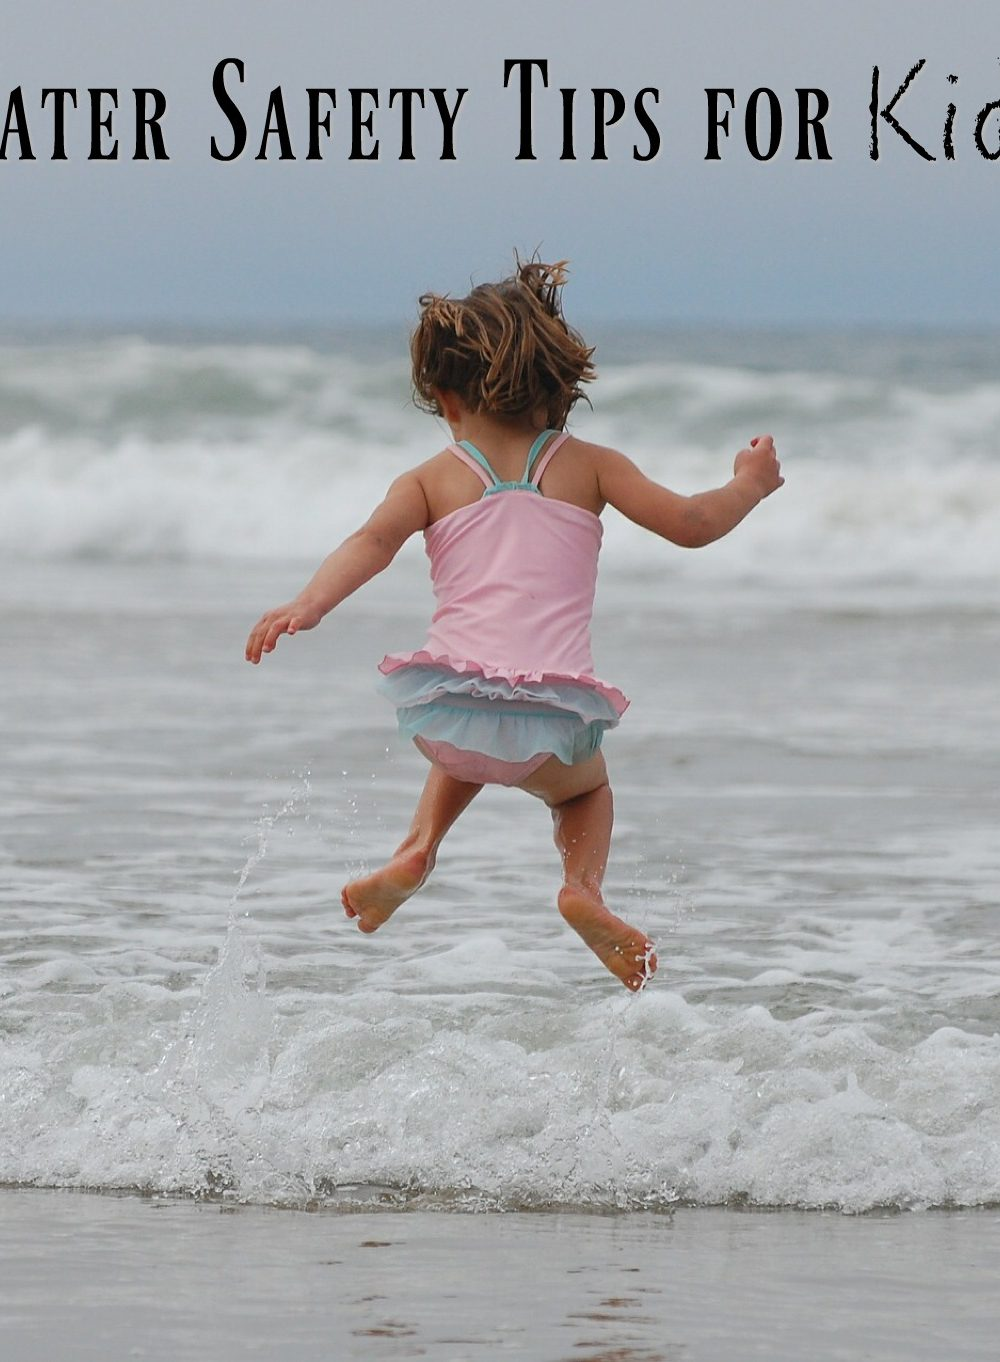 7 Water Safety Tips for Kids